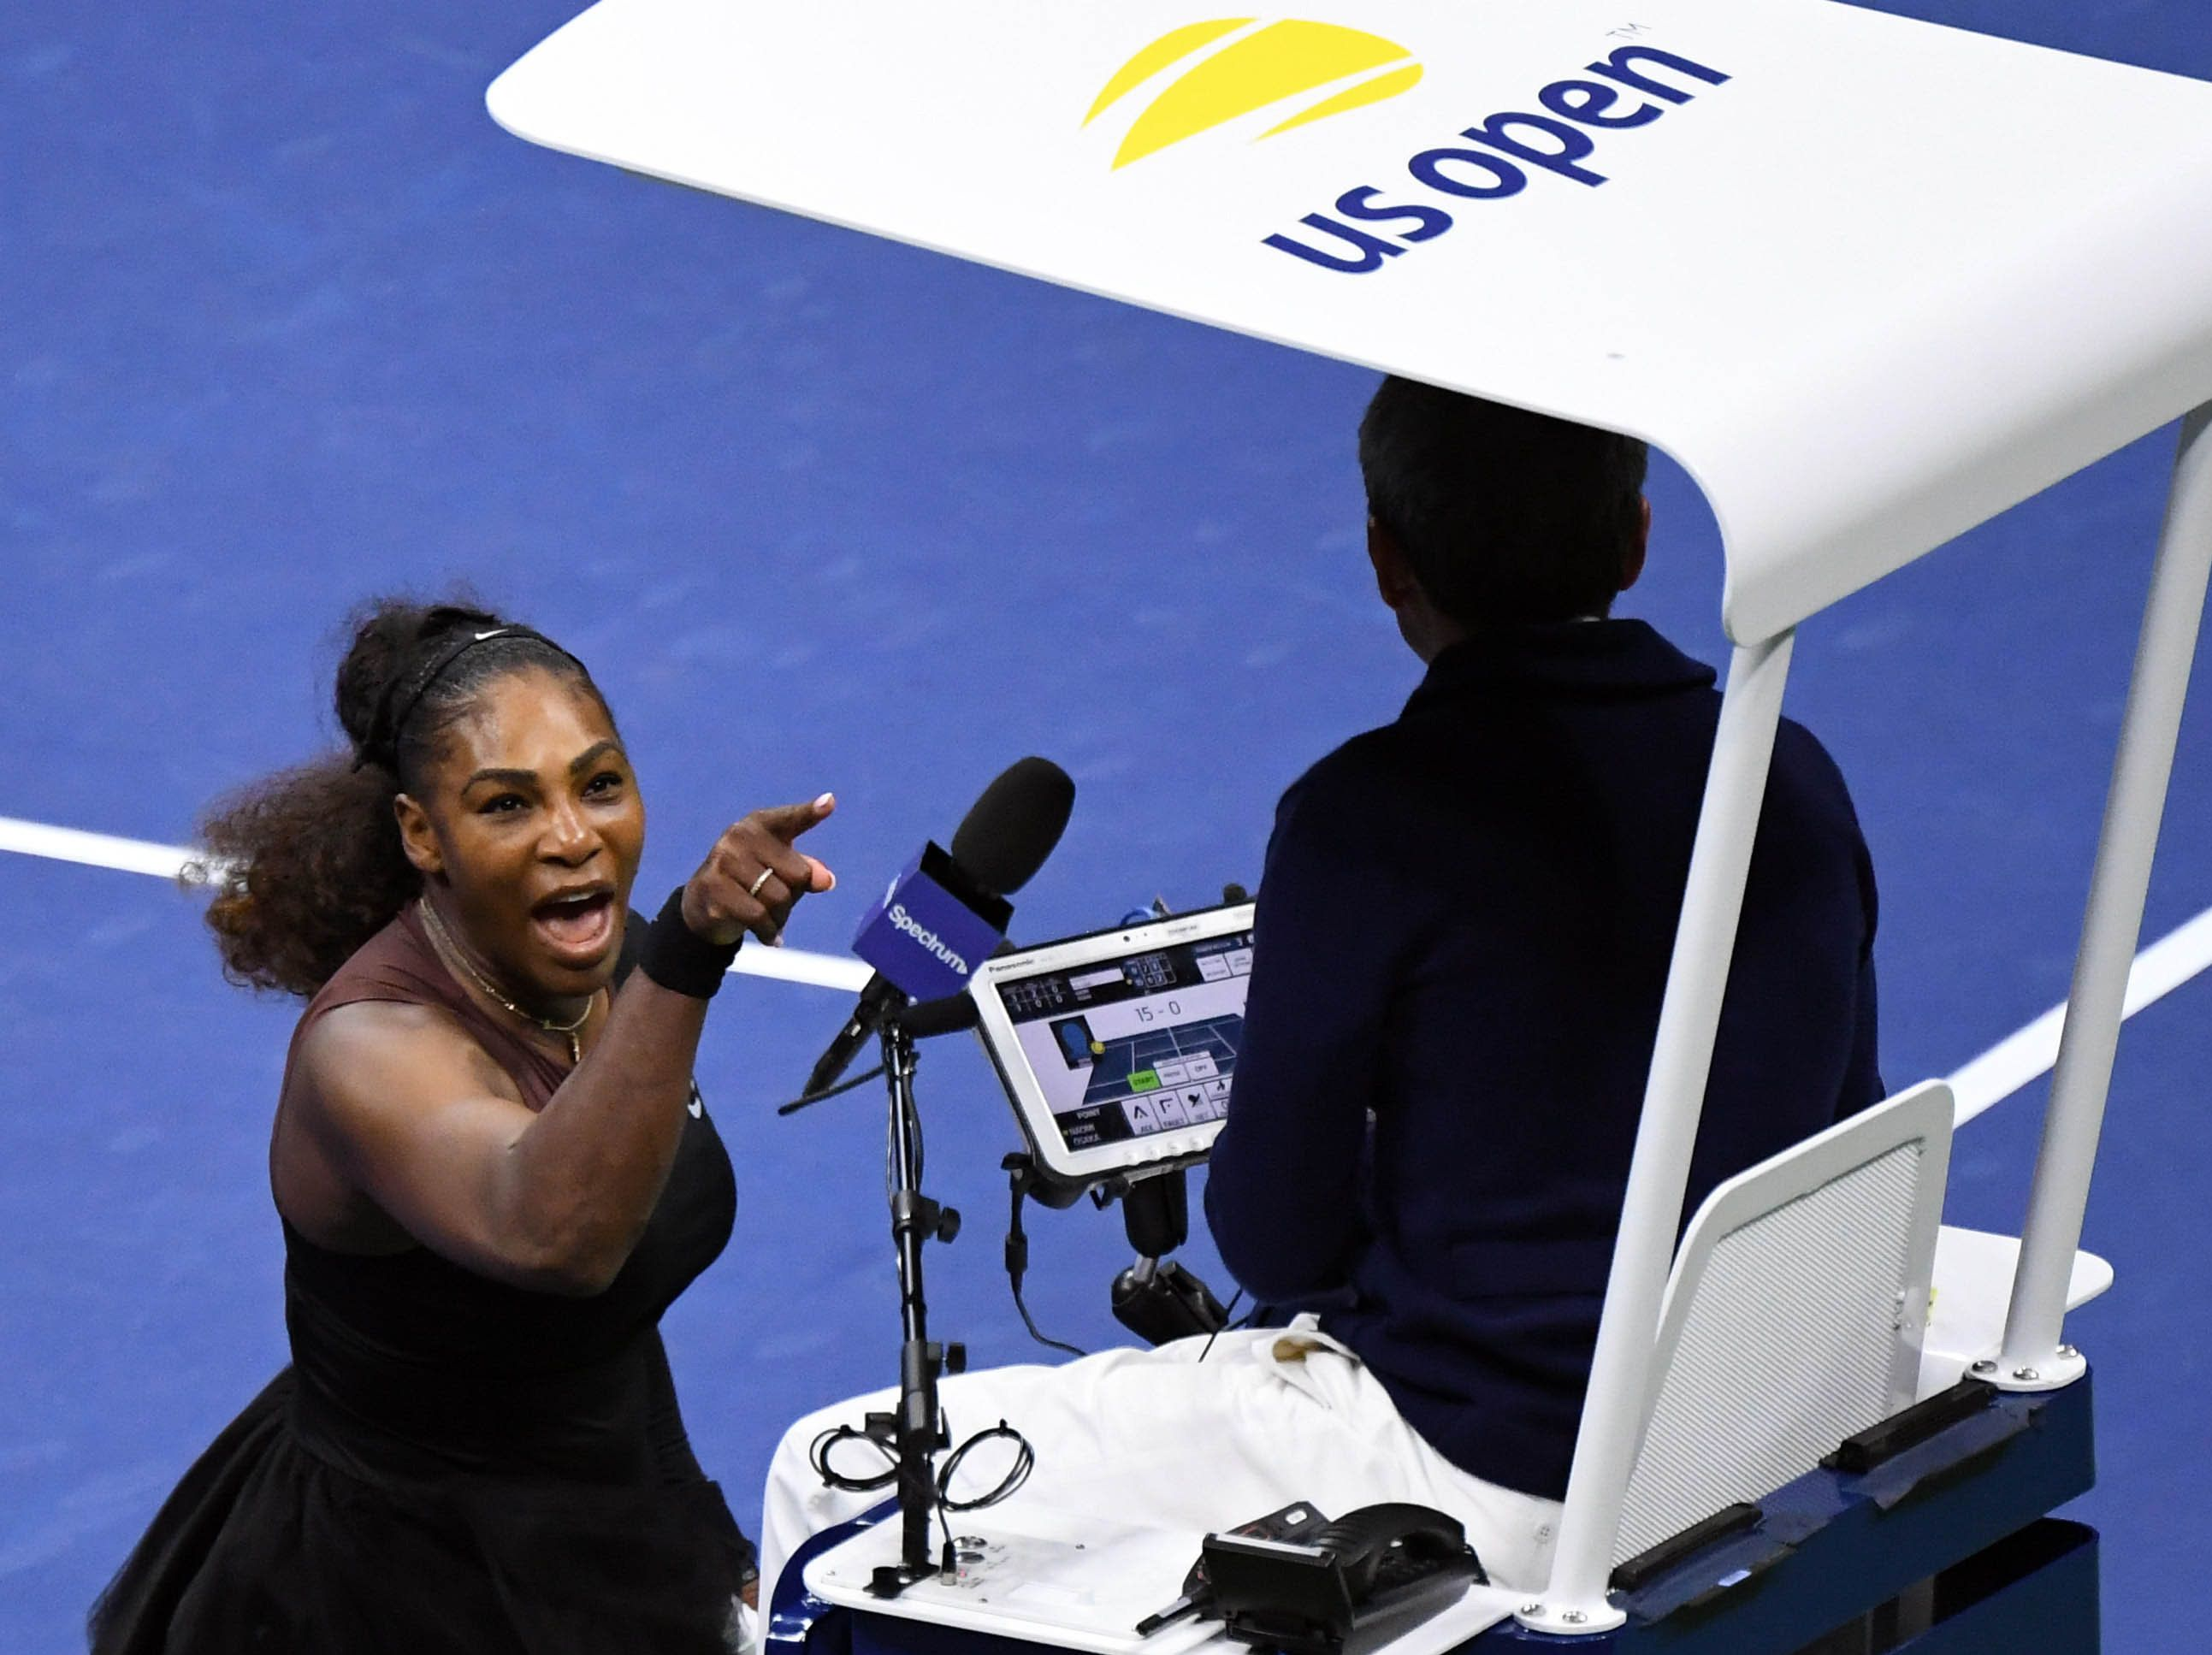 Umpires Fear 'No One Has Their Back' After Serena Williams